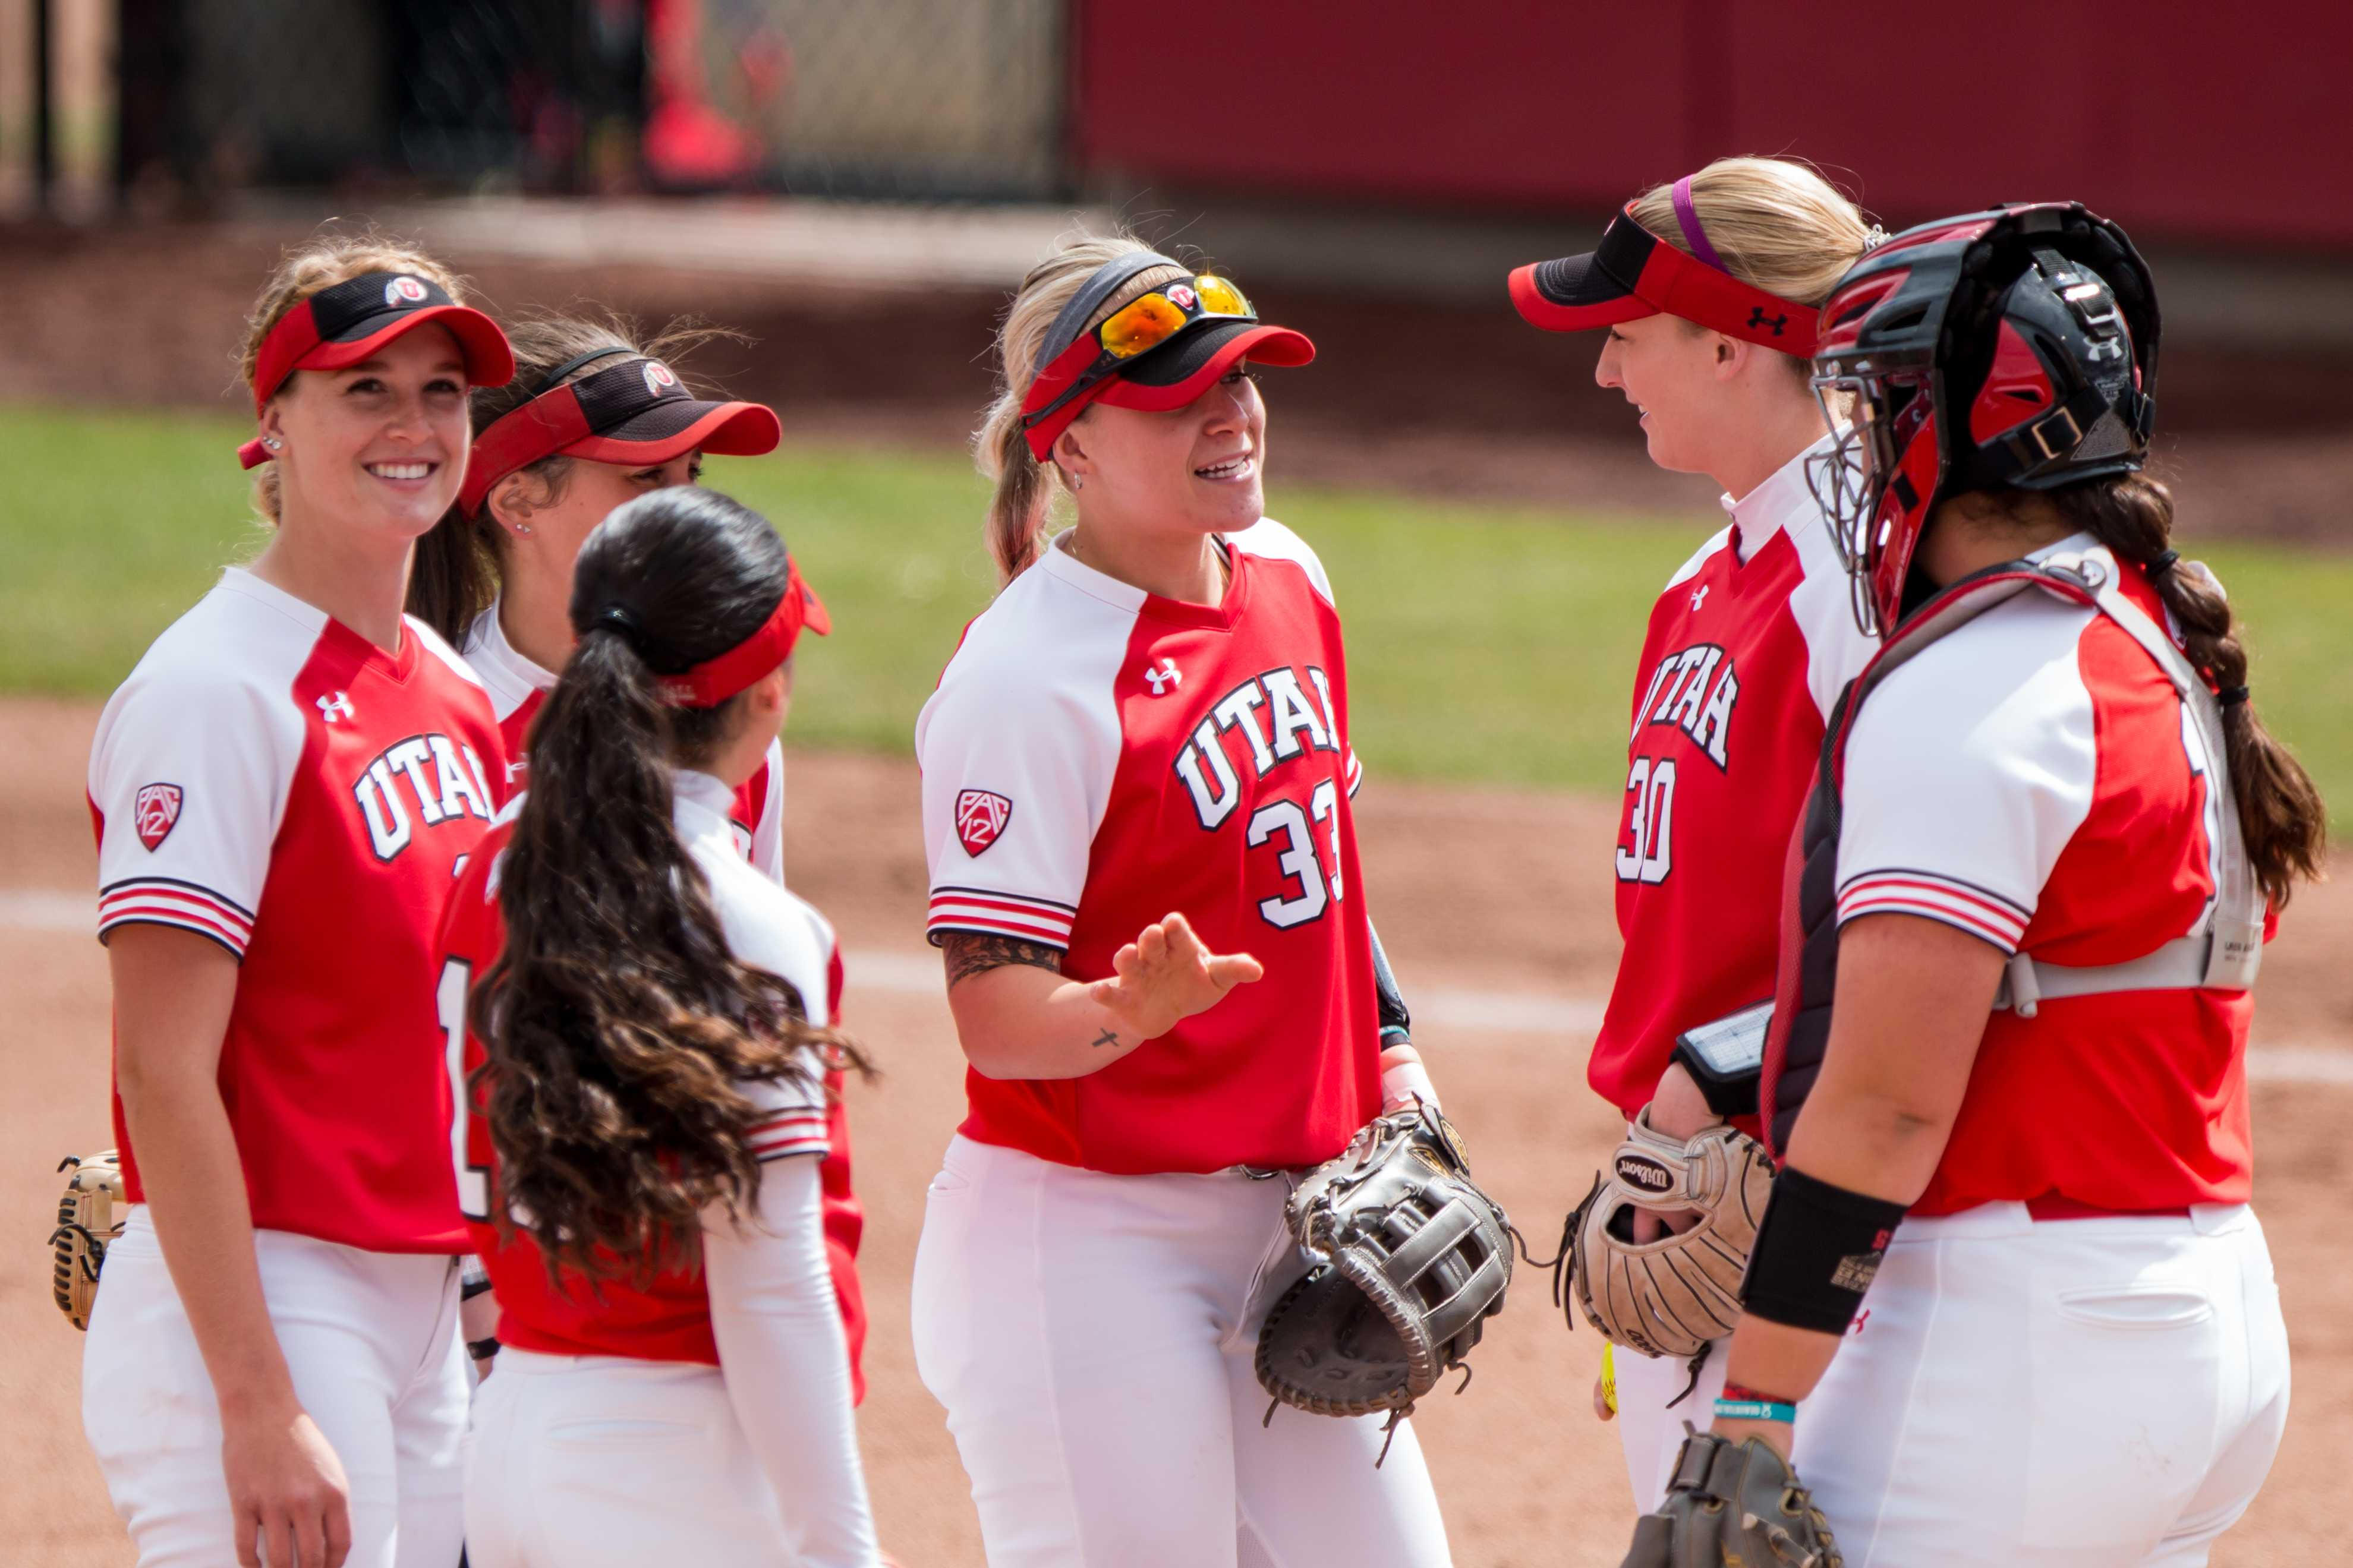 The University of Utah Softball infielders huddle up prior to the start of the game in an NCAA Softball game vs. Arizona at Dumke Family Softball Field in Salt Lake City, UT on Saturday April 06, 2019.  (Photo by Curtis Lin | Daily Utah Chronicle)